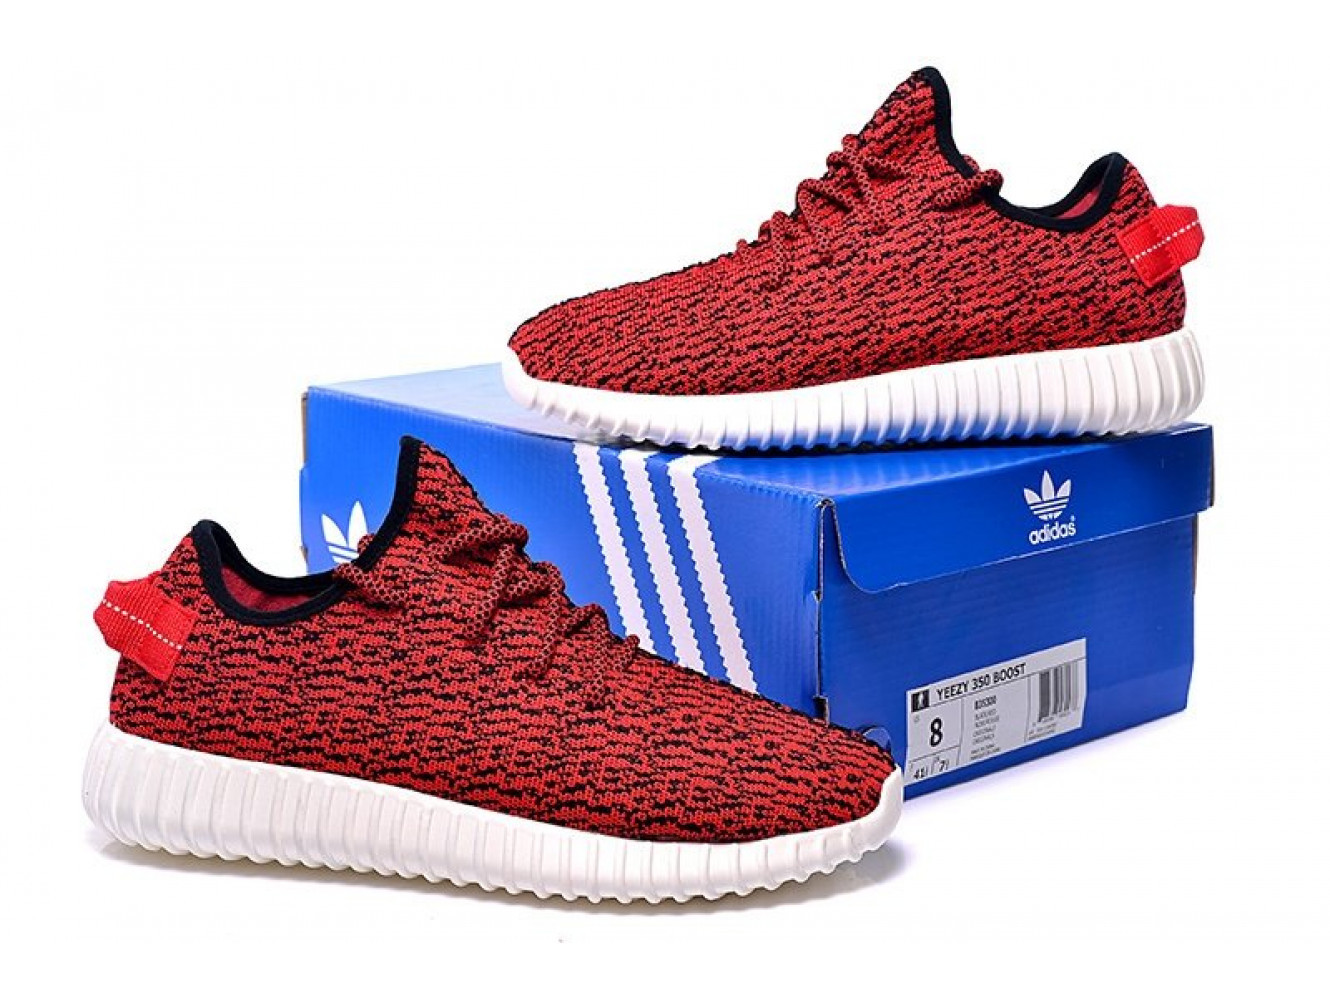 Adidas Yeezy 350 Boost By Kanye West Жен (Red) (002)